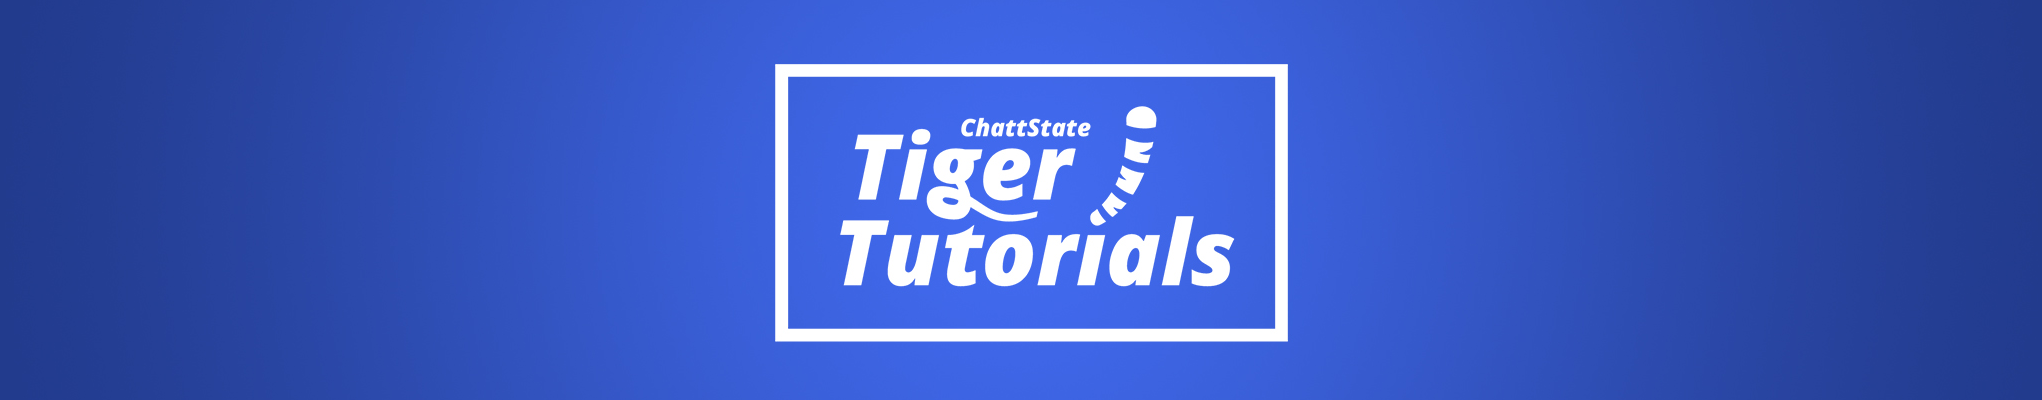 Chattanooga State Community College: Tigerpedia banner